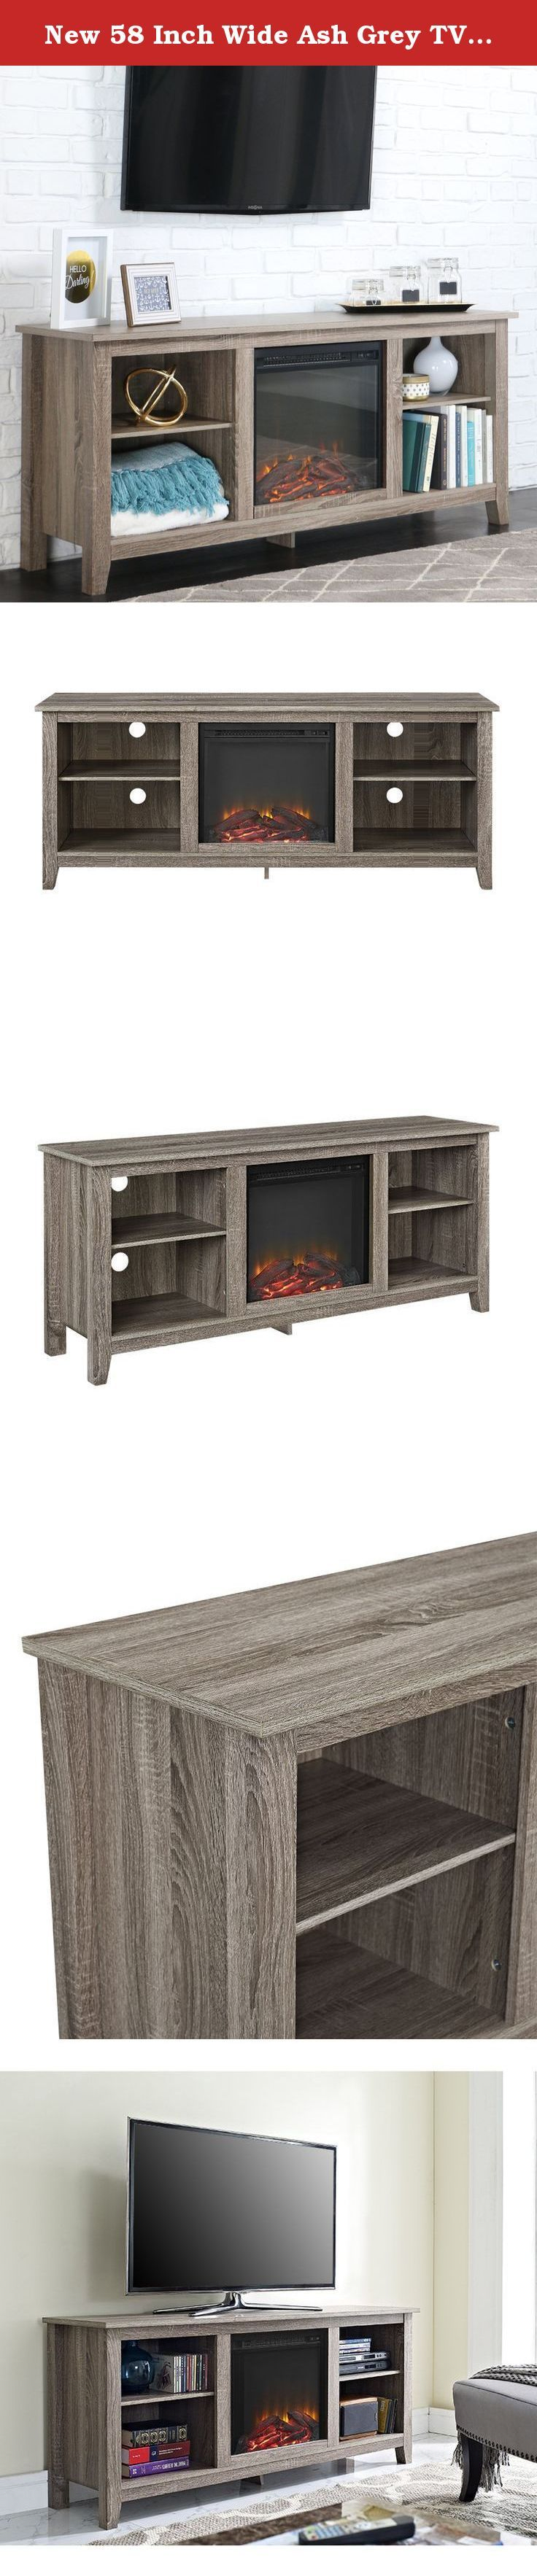 New 58 Inch Wide Ash Grey TV Stand with Fireplace Insert. Create a warm, entertaining space in any room of your home with this media stand with electric fireplace. Crafted from high-grade MDF with a durable laminate finish to accommodate most flat panel TVs up to 60 inches. Features adjustable shelving to fit your components and a cable management system. Installation requires no technician, simply plug into standard household outlet and no venting required.